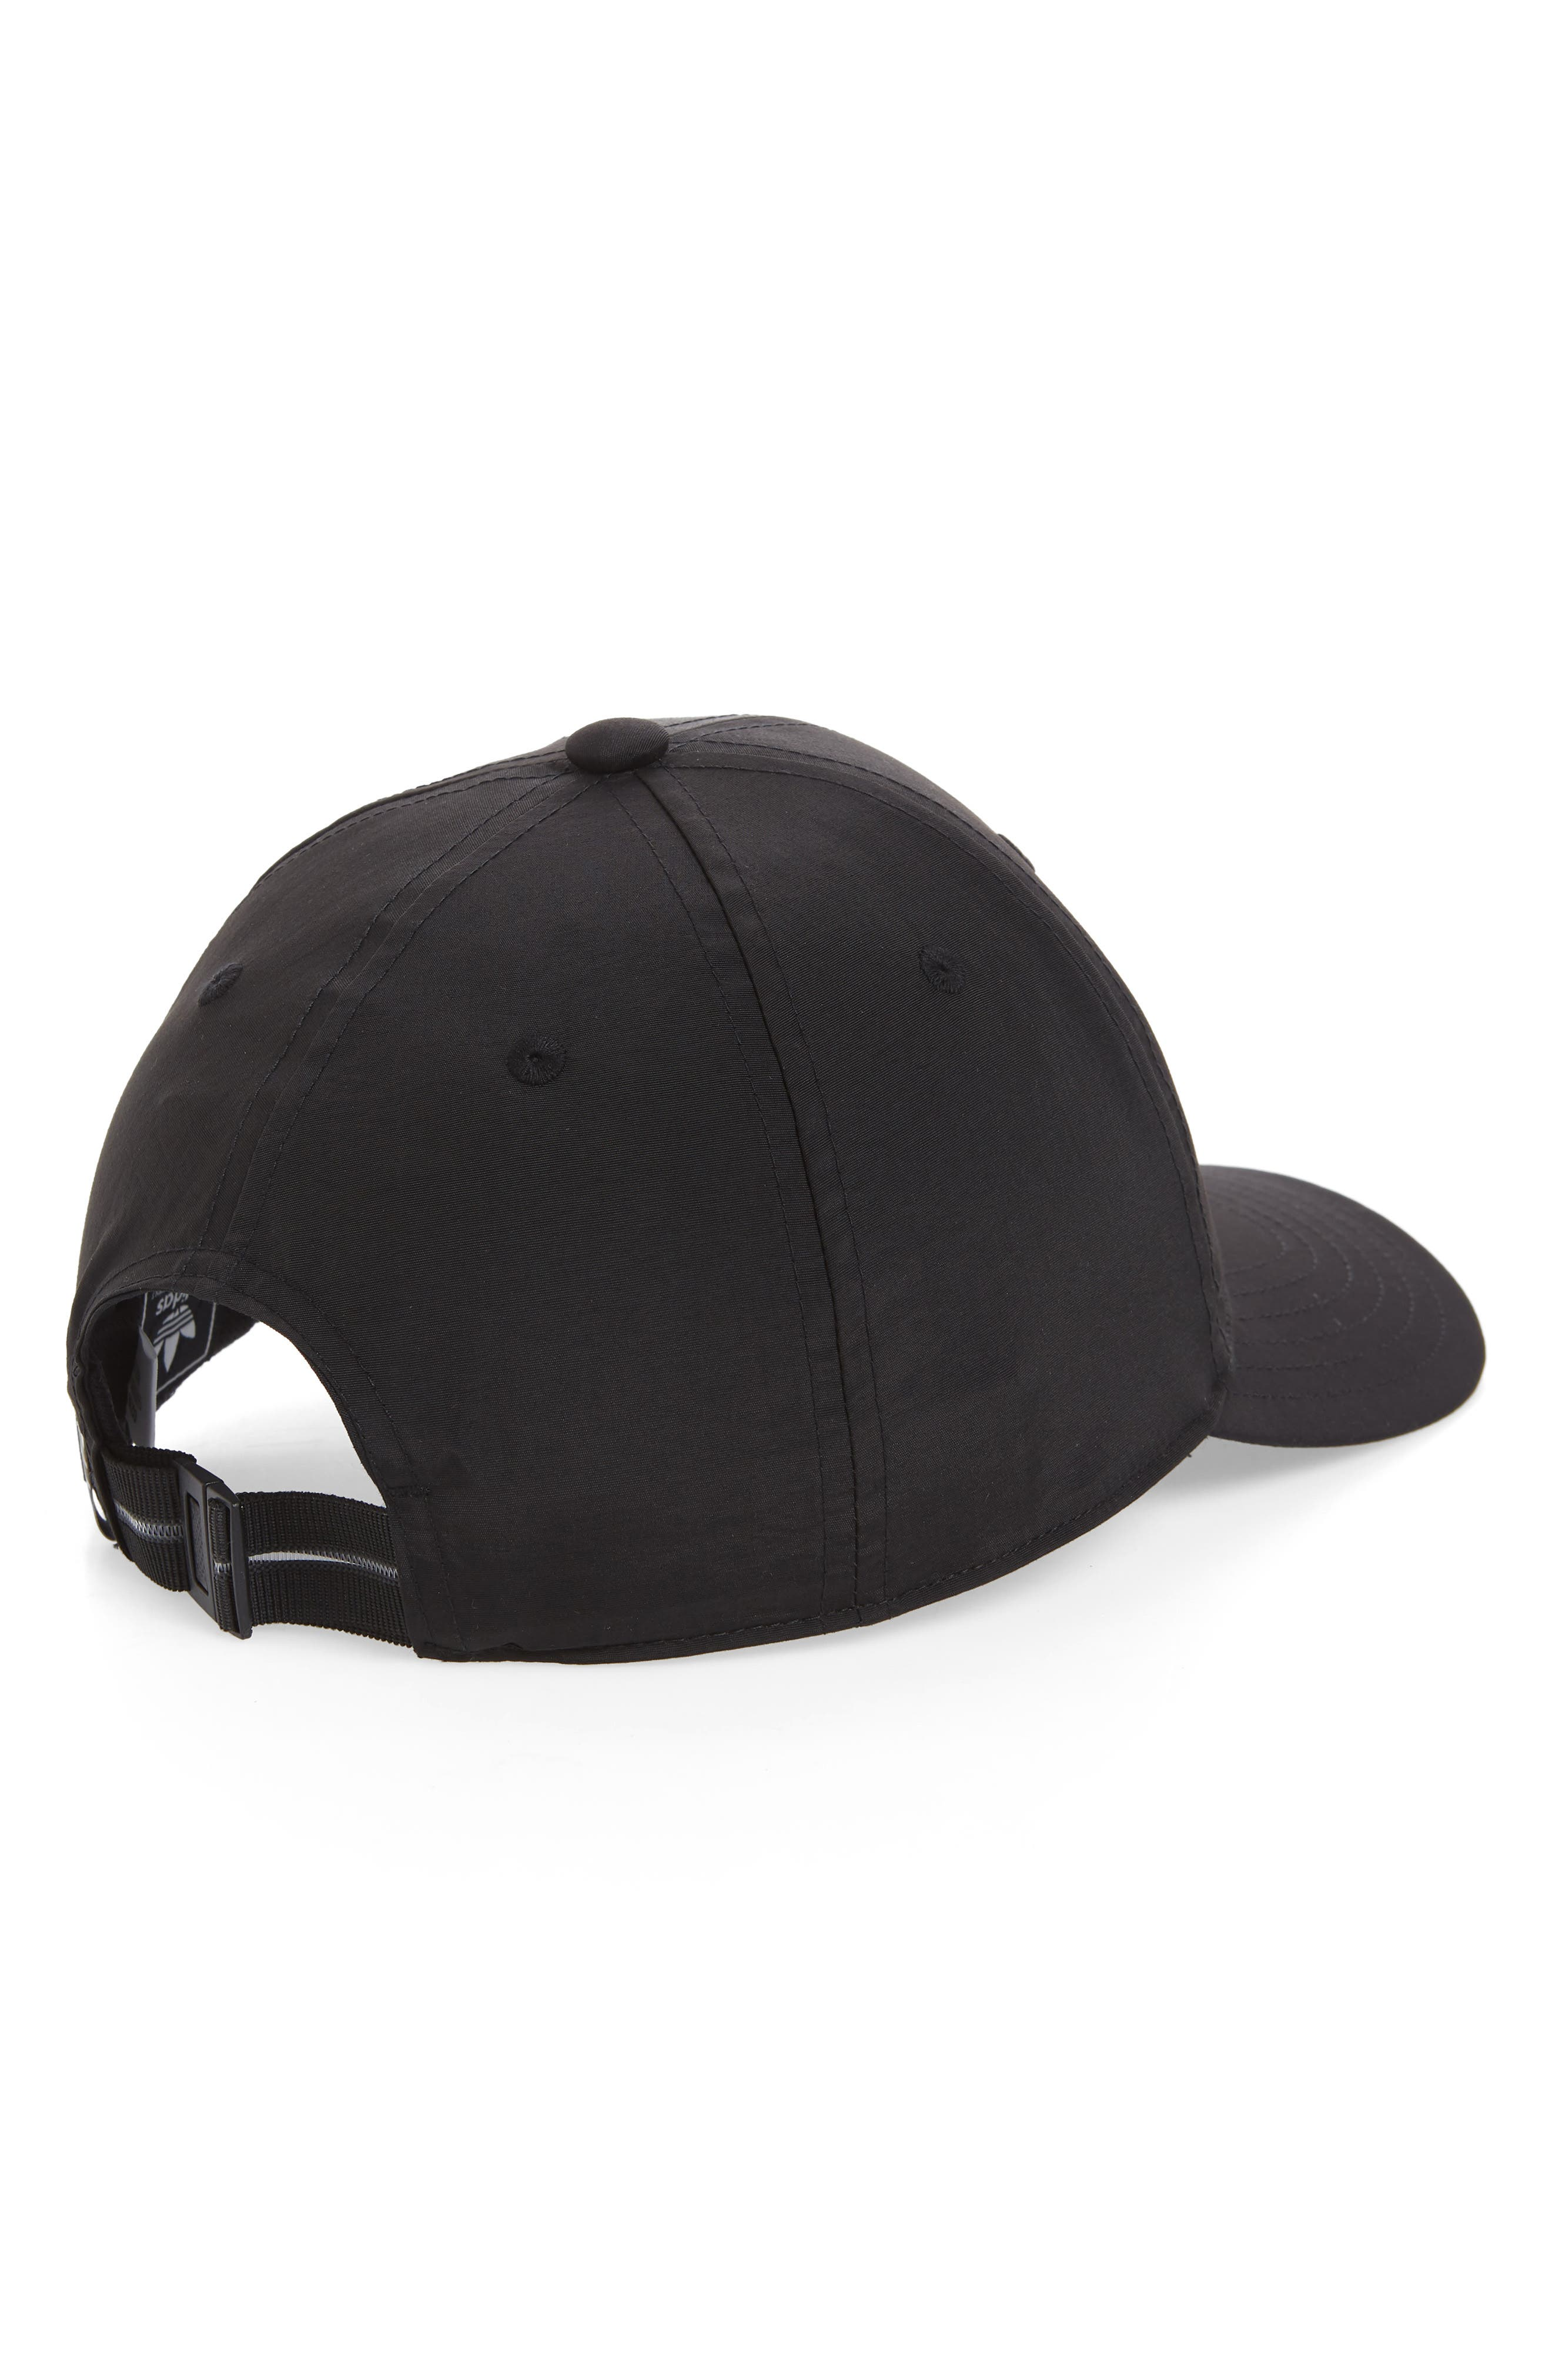 Relaxed Ball Cap,                             Alternate thumbnail 3, color,                             001